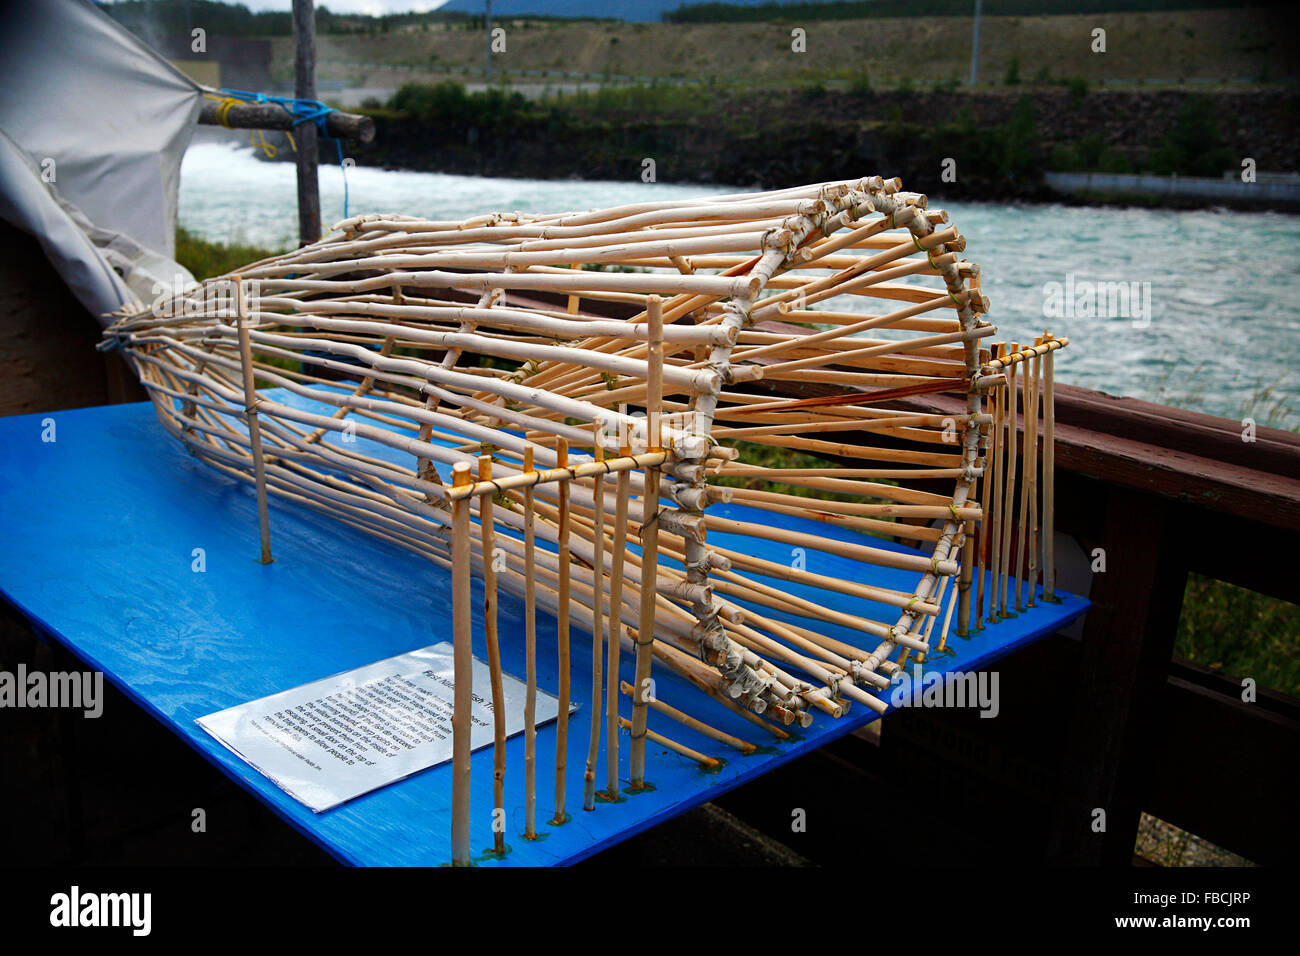 A first nation fish trap exhibit in Whitehorse Yukon Canada - Stock Image